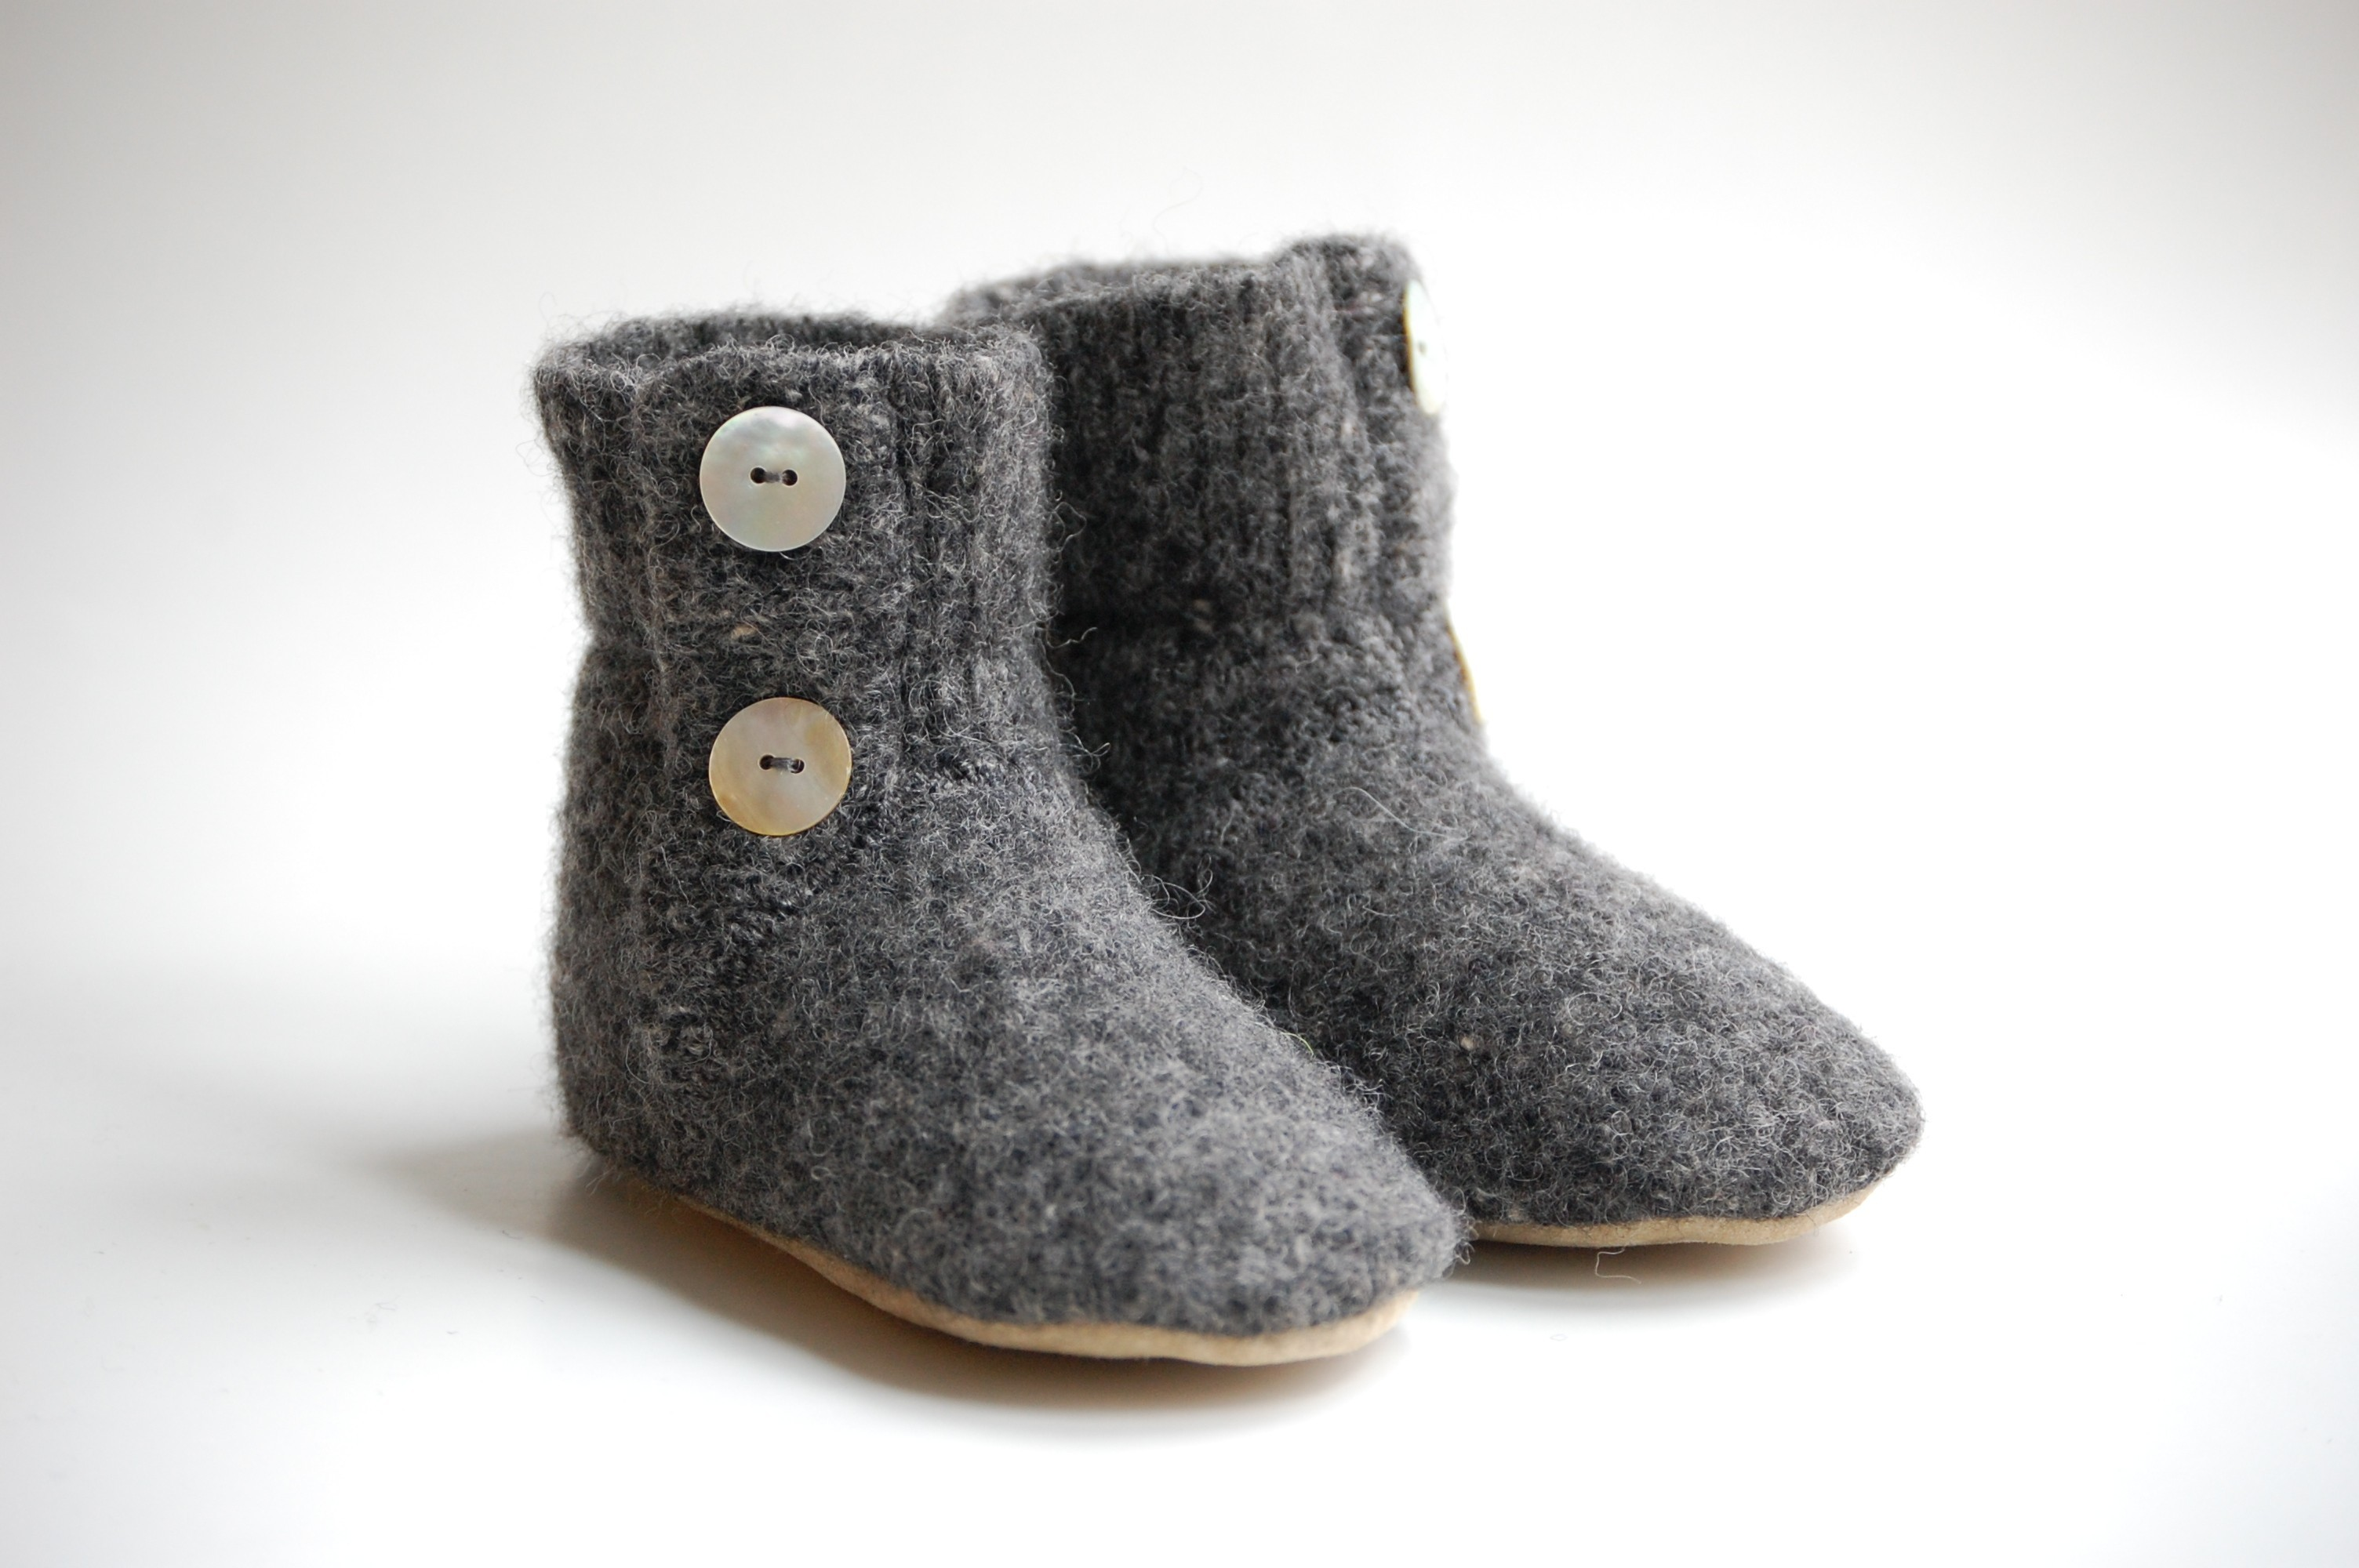 wooly baby, booties, baby, children, footwear, slippers, thelooksee